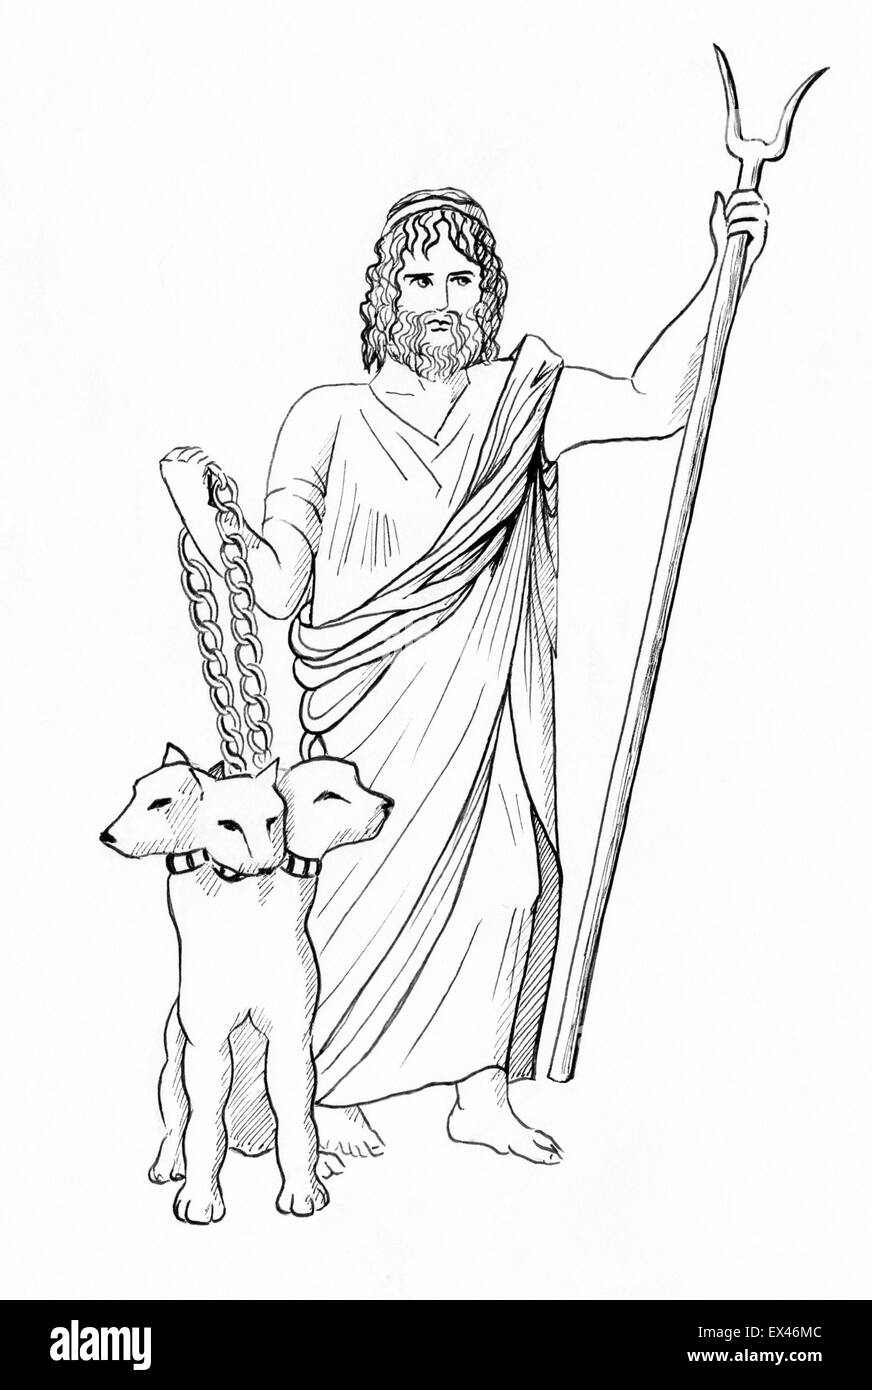 Line Drawing Of Pluto Hades Dis God Of The Underworld With Cerberus